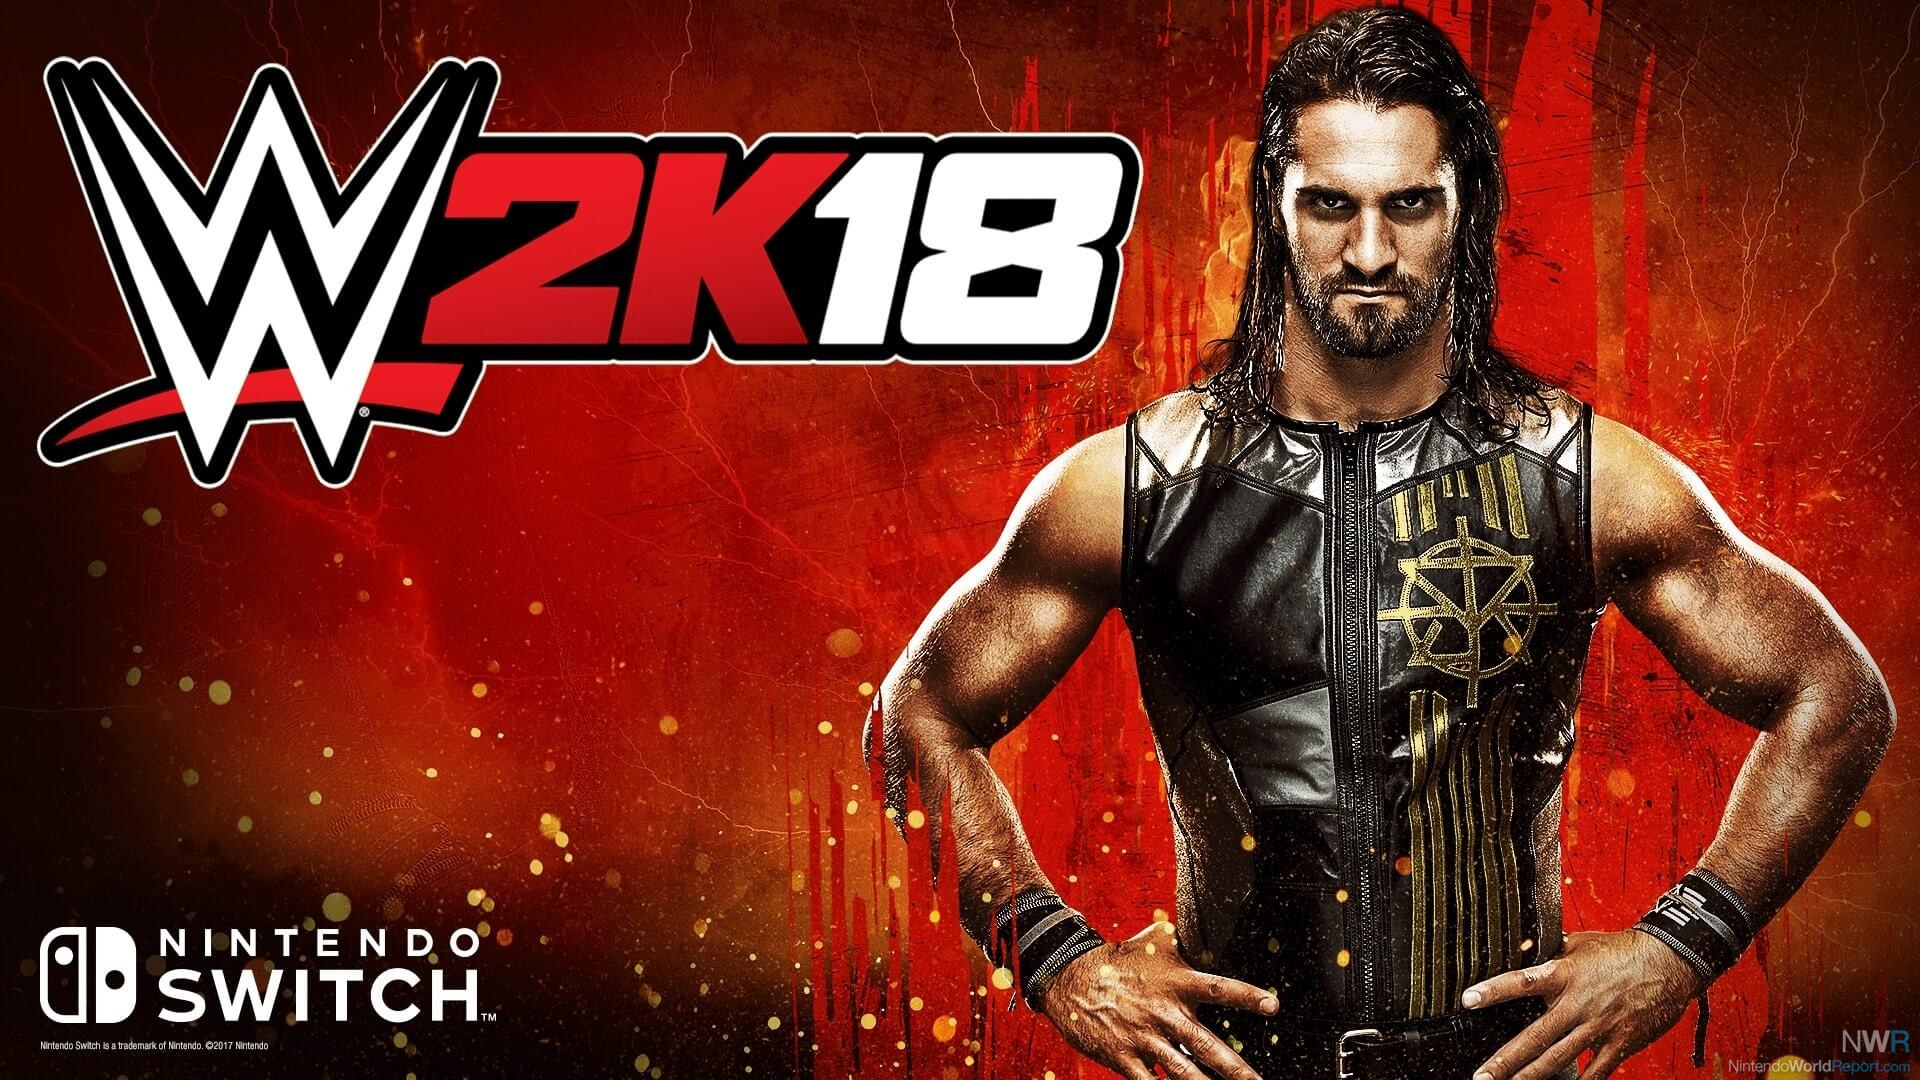 WWE 2K18 for Nintendo Switch Announced by Cover Star Seth Rollins